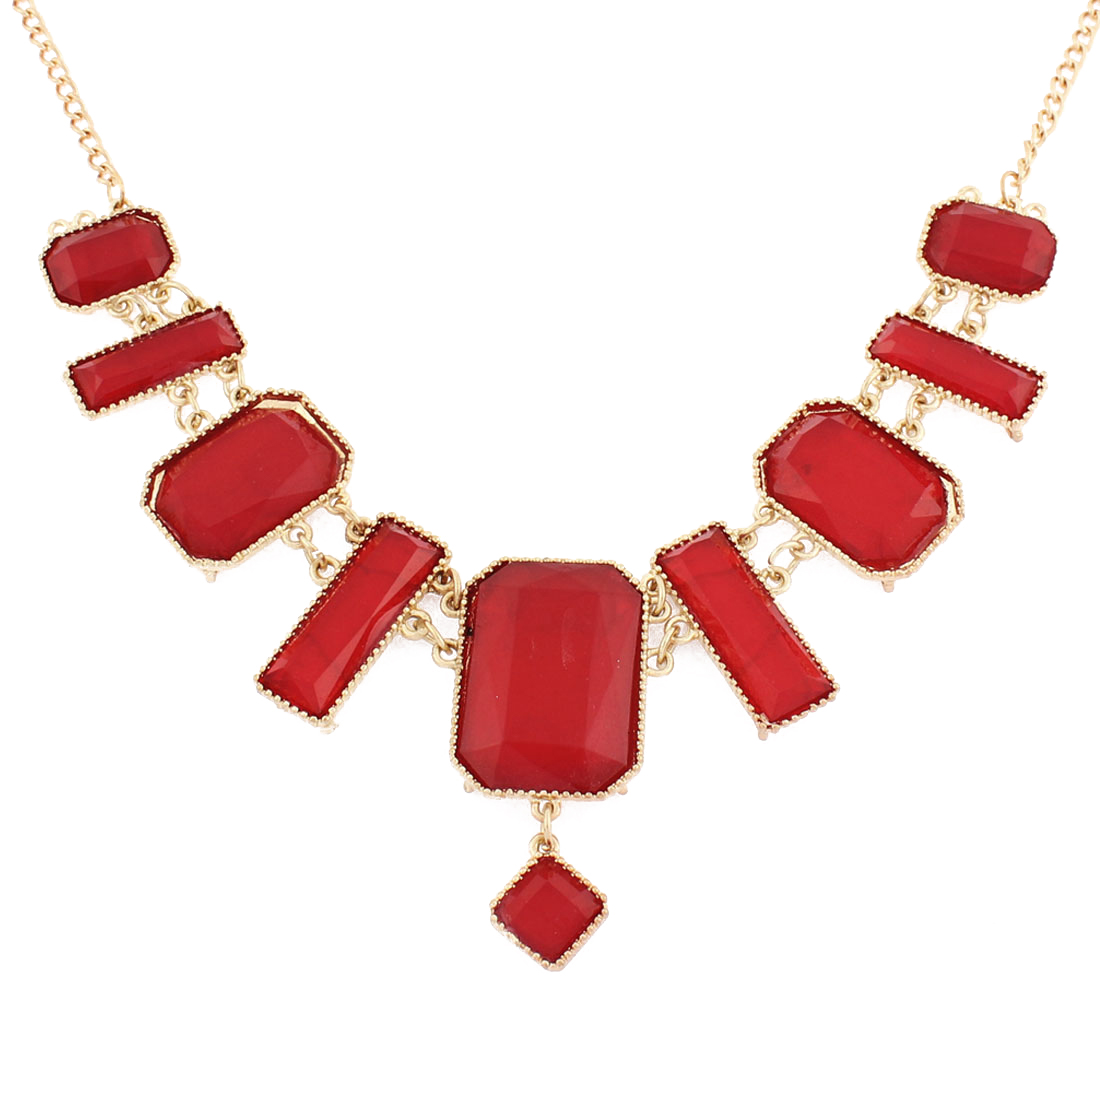 Red Rhinestone Pendant Evening Party Chain Necklace Bib Jewelry